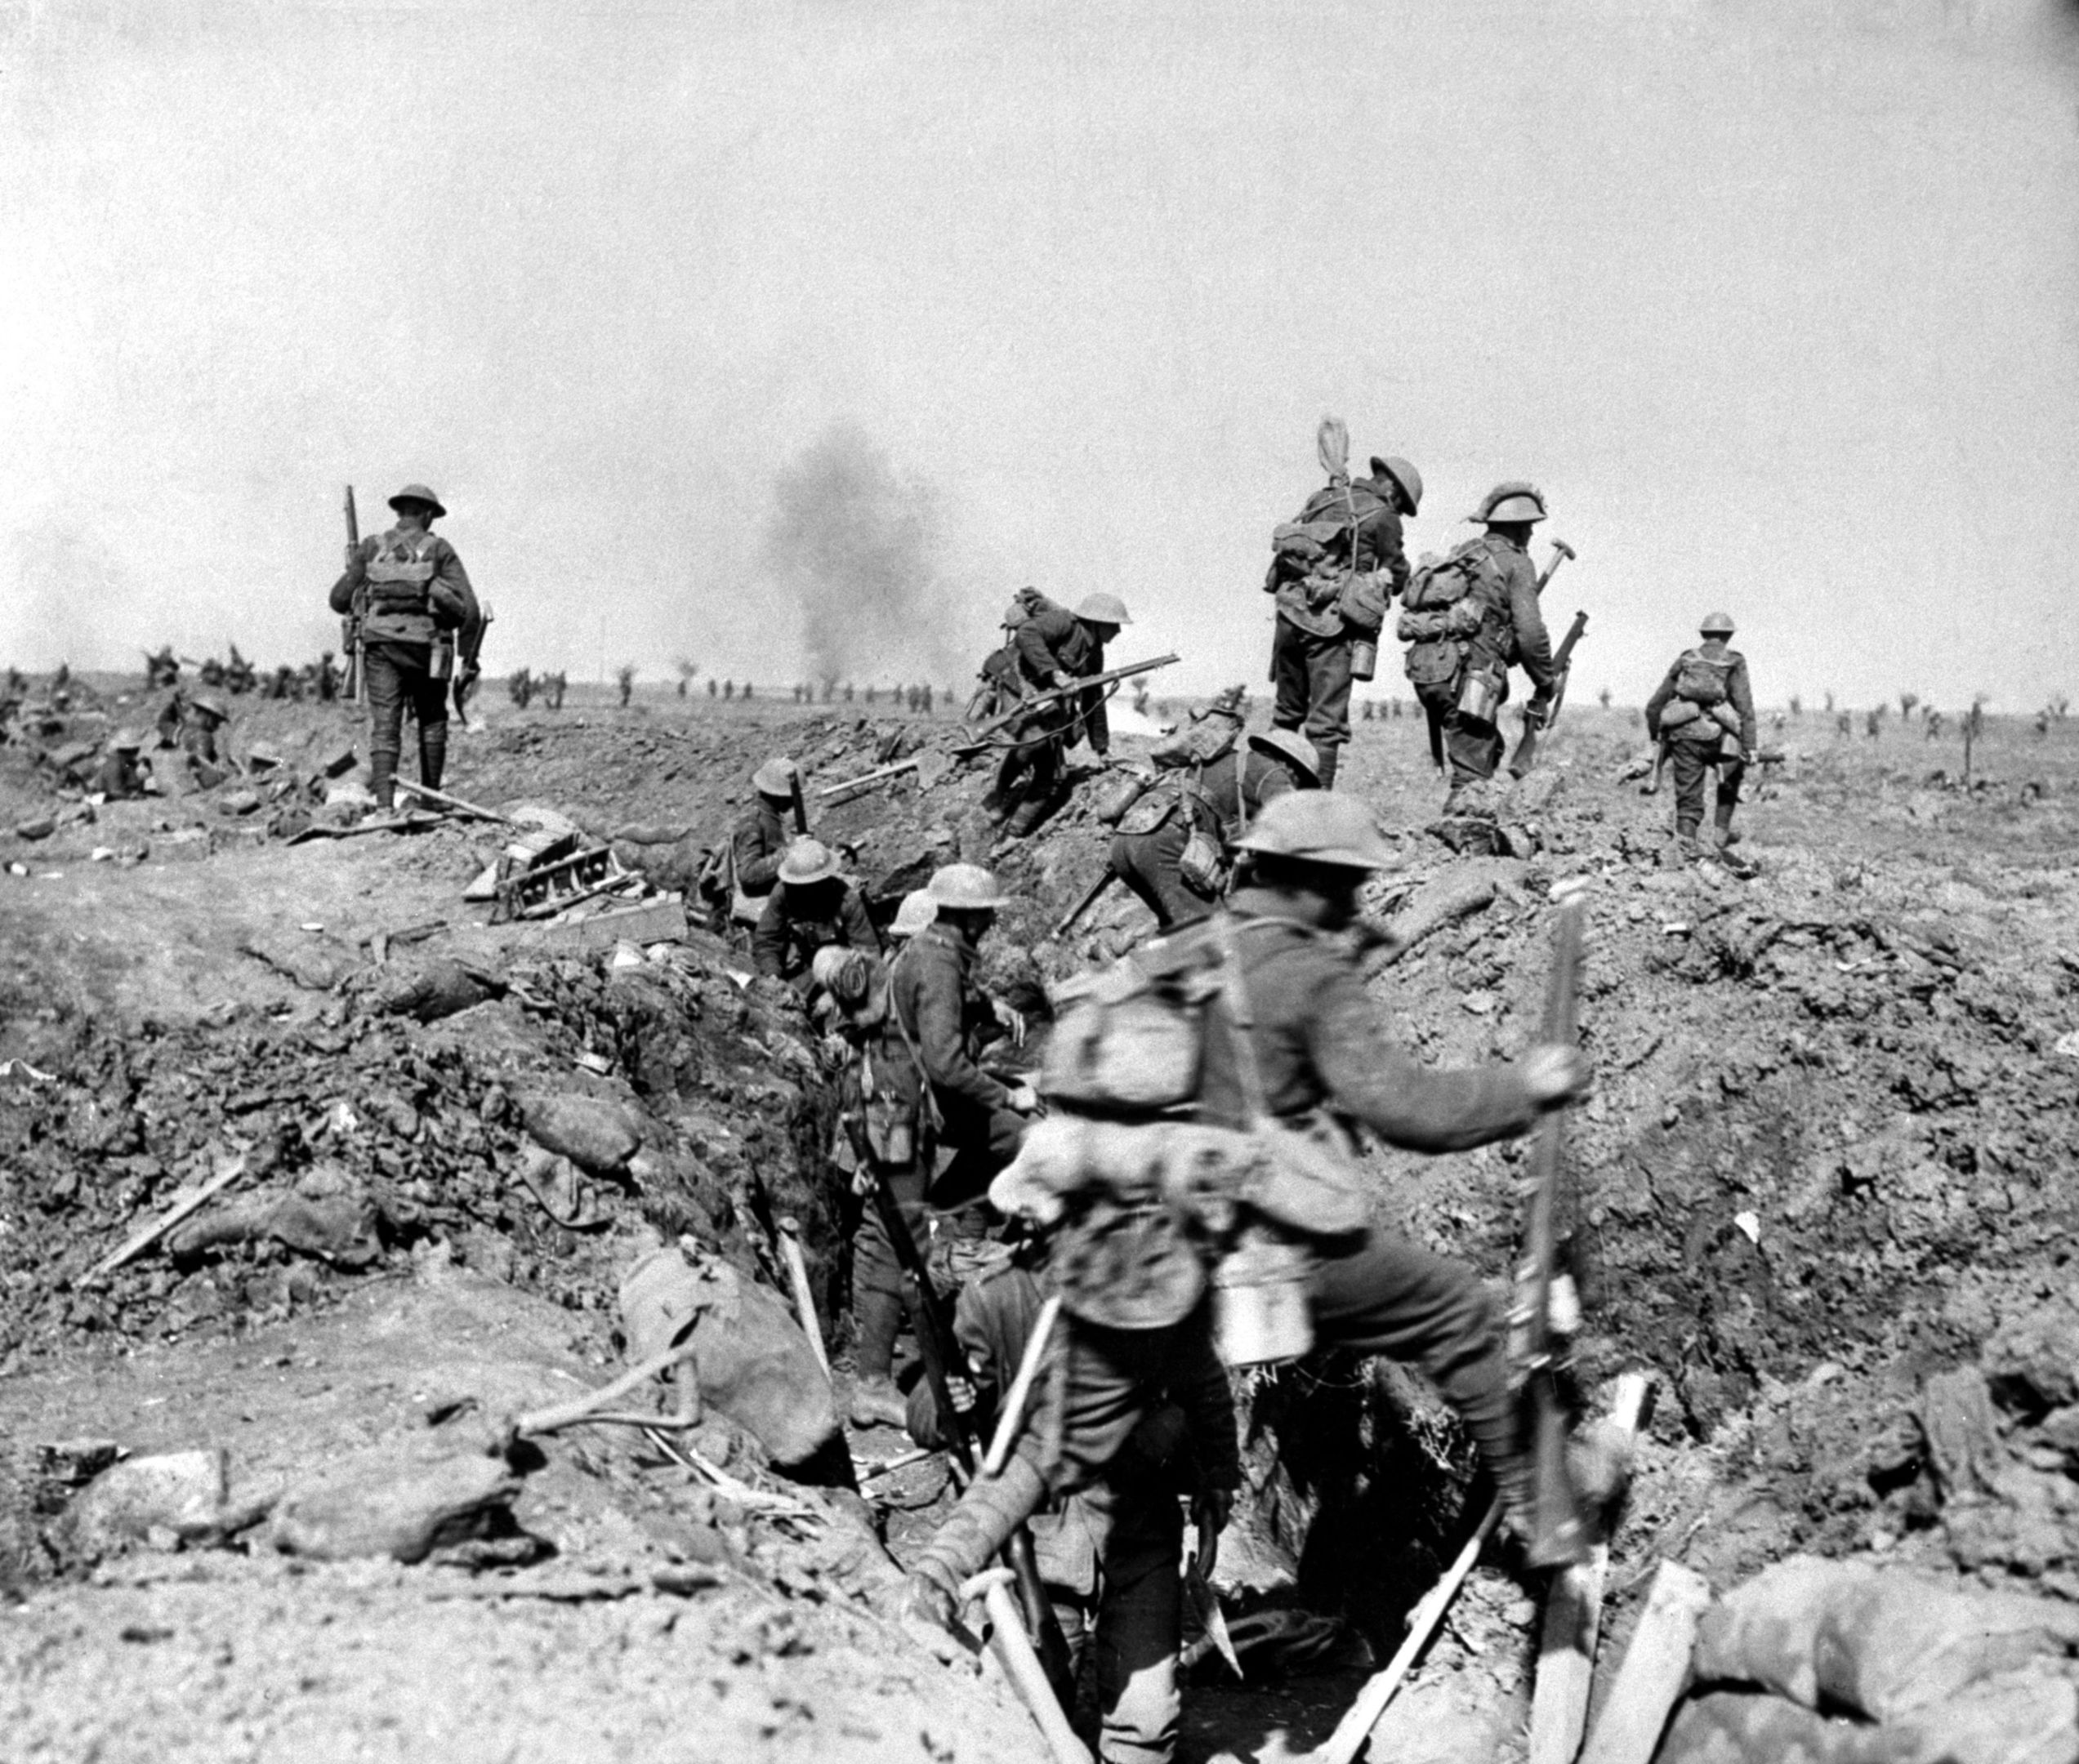 Troops advancing near Ginchy